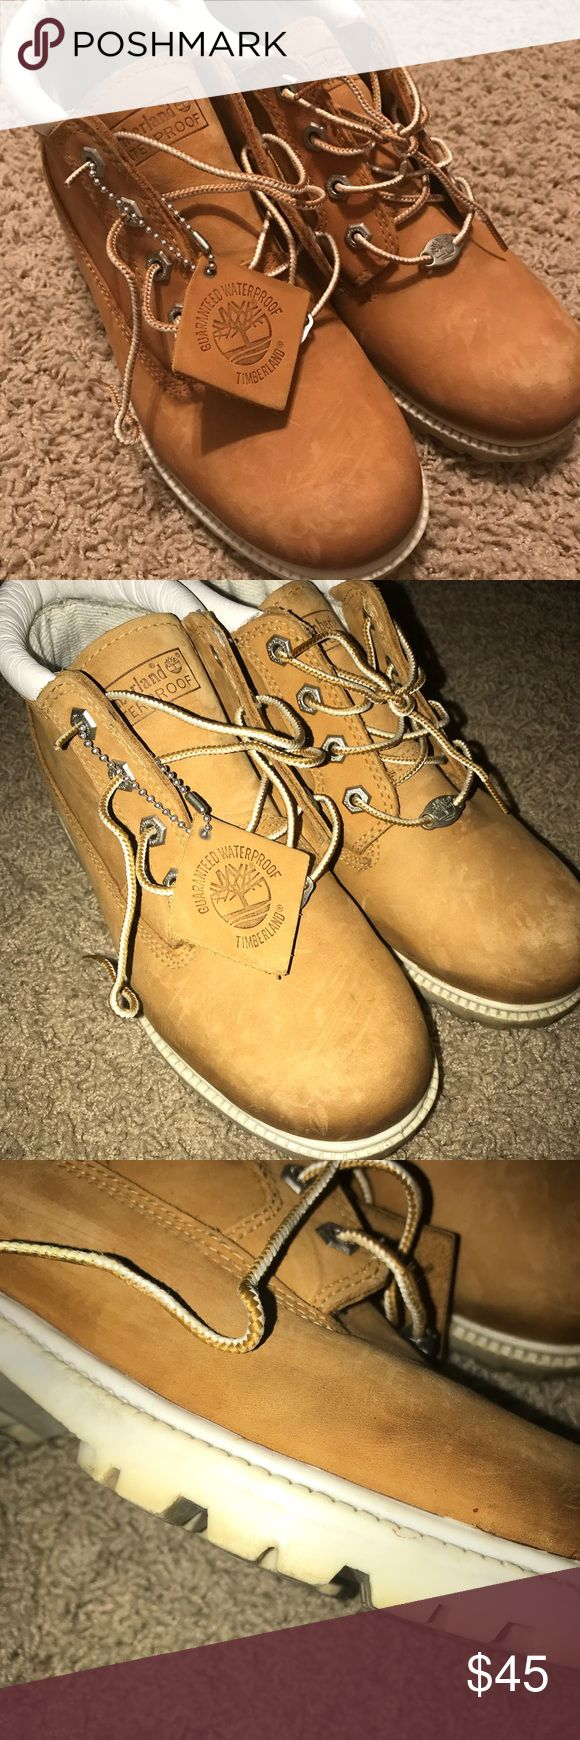 Timberland Nellie Chukka Boots sz 7 Timberland waterproof boots, women's size 7. The white on the bottom looks a little dingy, but I'm sure it could be cleaned other than that they are in good condition. Timberland Shoes Ankle Boots & Booties